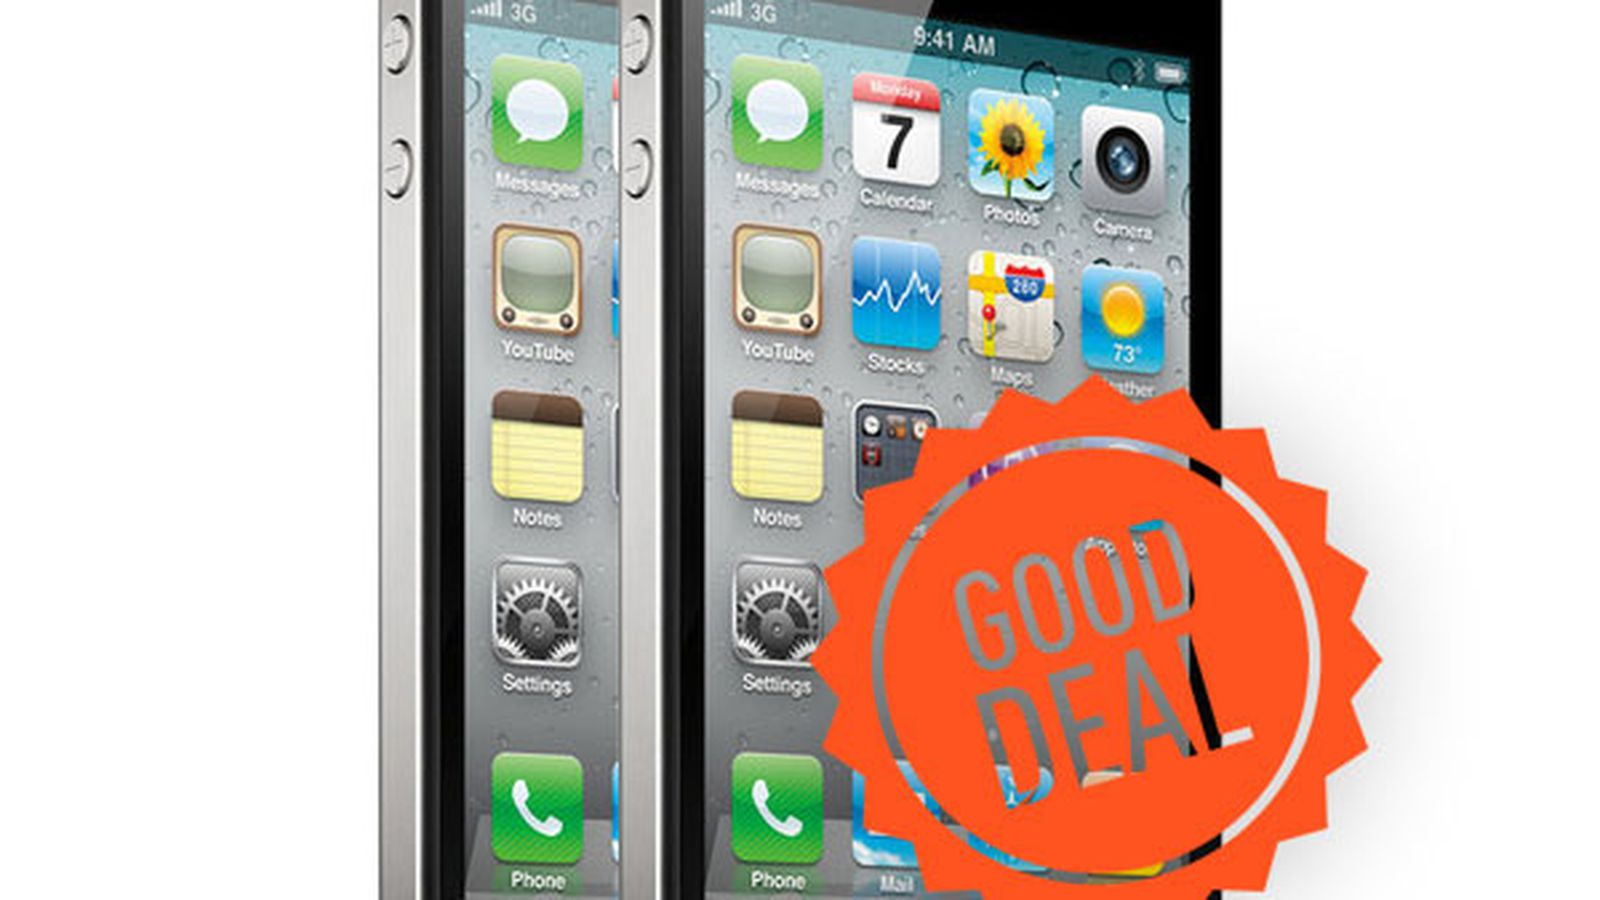 iphone buy one get one free verizon deal iphone 4 32gb buy one get one free today only 20489